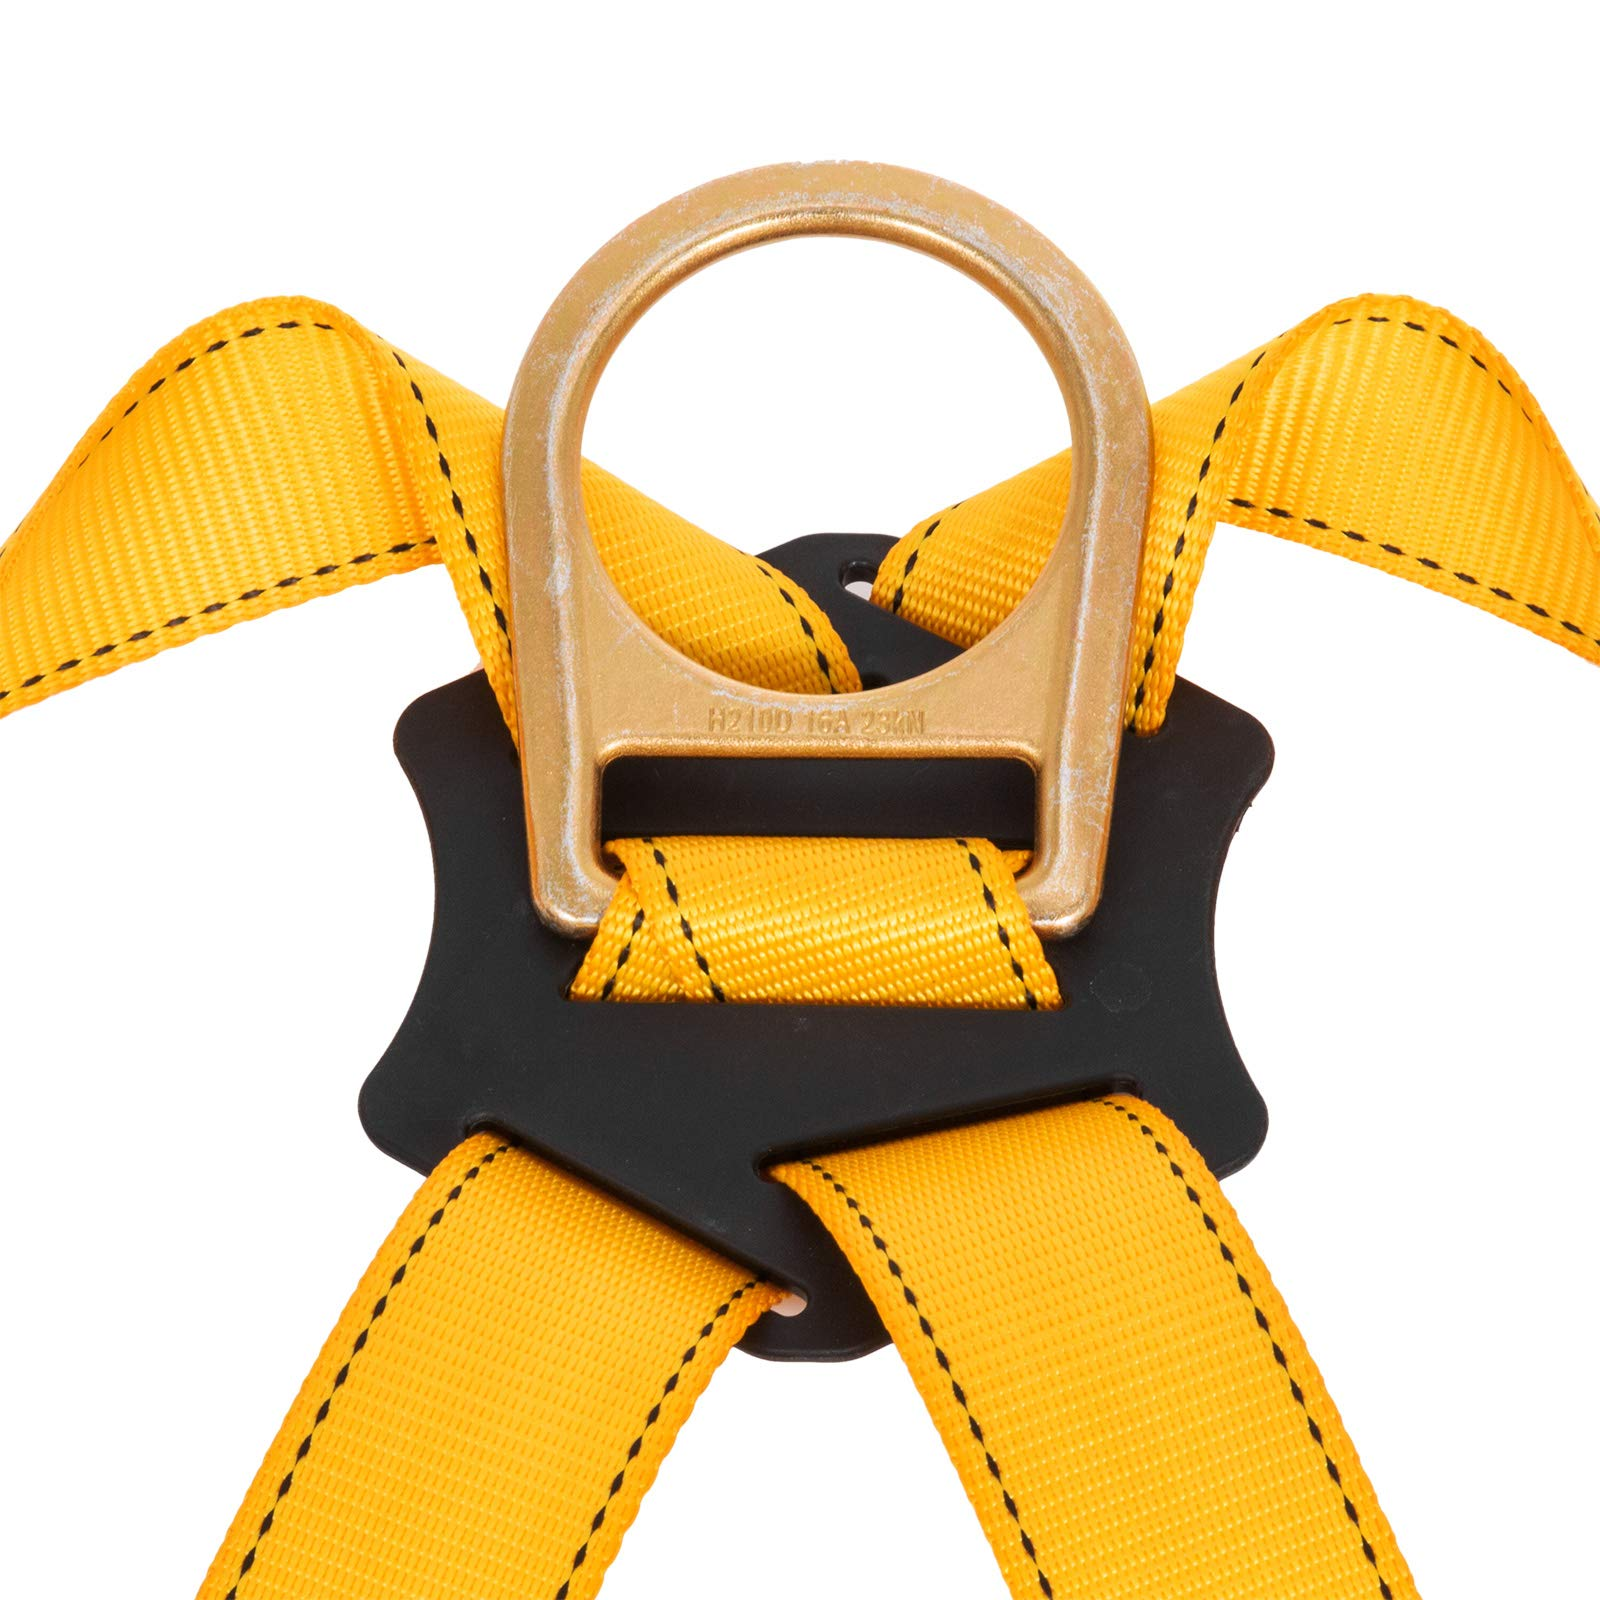 Happybuy Construction Safety Harness Fall Protection Full Body Safety Harness with 3 D-Rings,Belt and Additional Padding (Yellow with Belt) by Happybuy (Image #10)